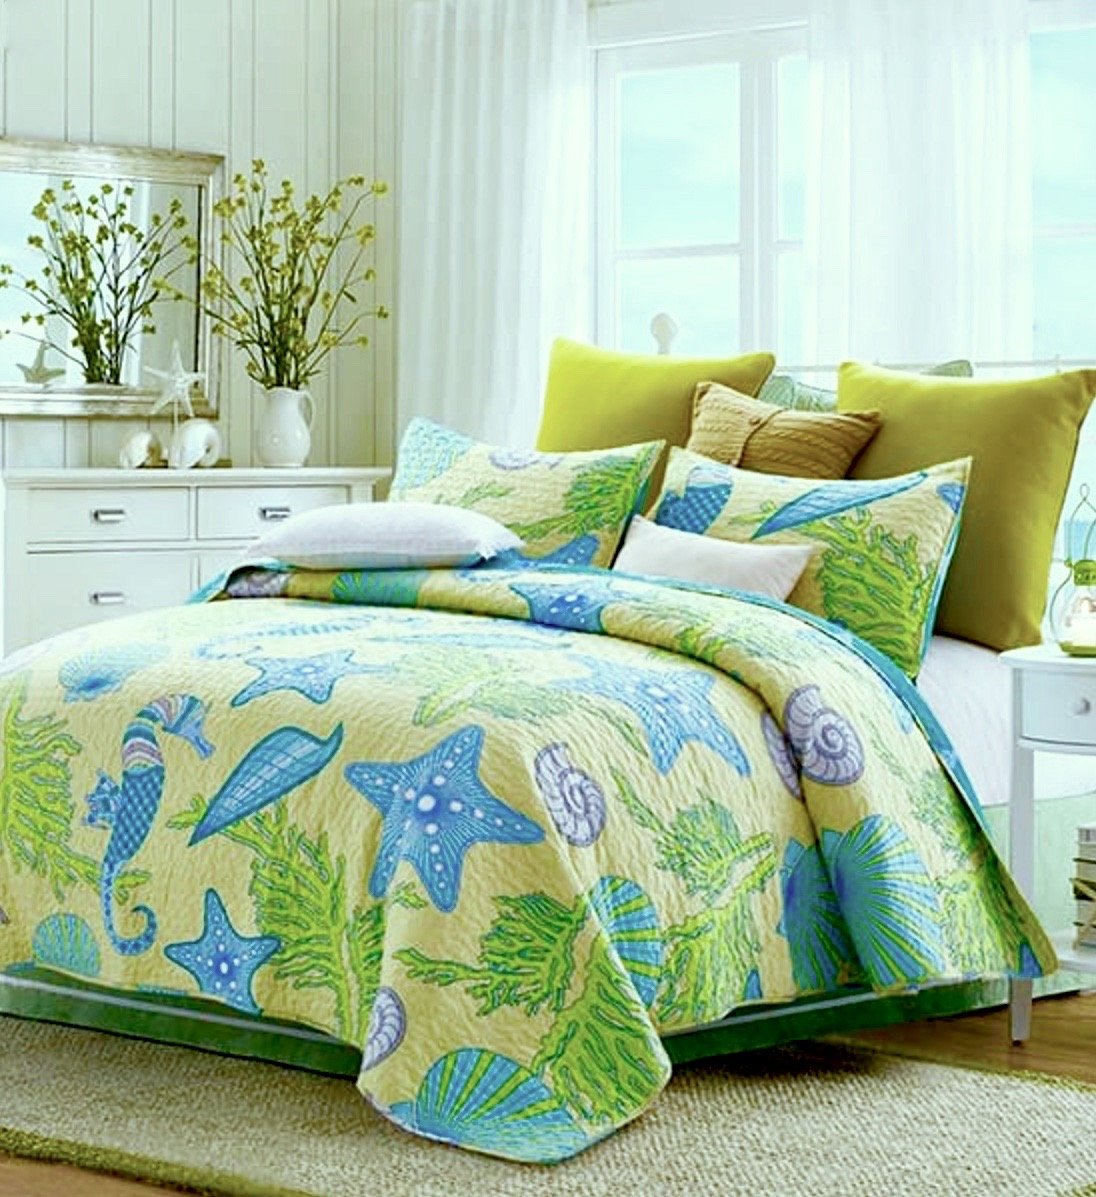 Beach House REVERSIBLE Coastal Tropical Sea lifeSEAHORSE SEASHELL Yellow Lime QUILT SET (3pc KING Size)